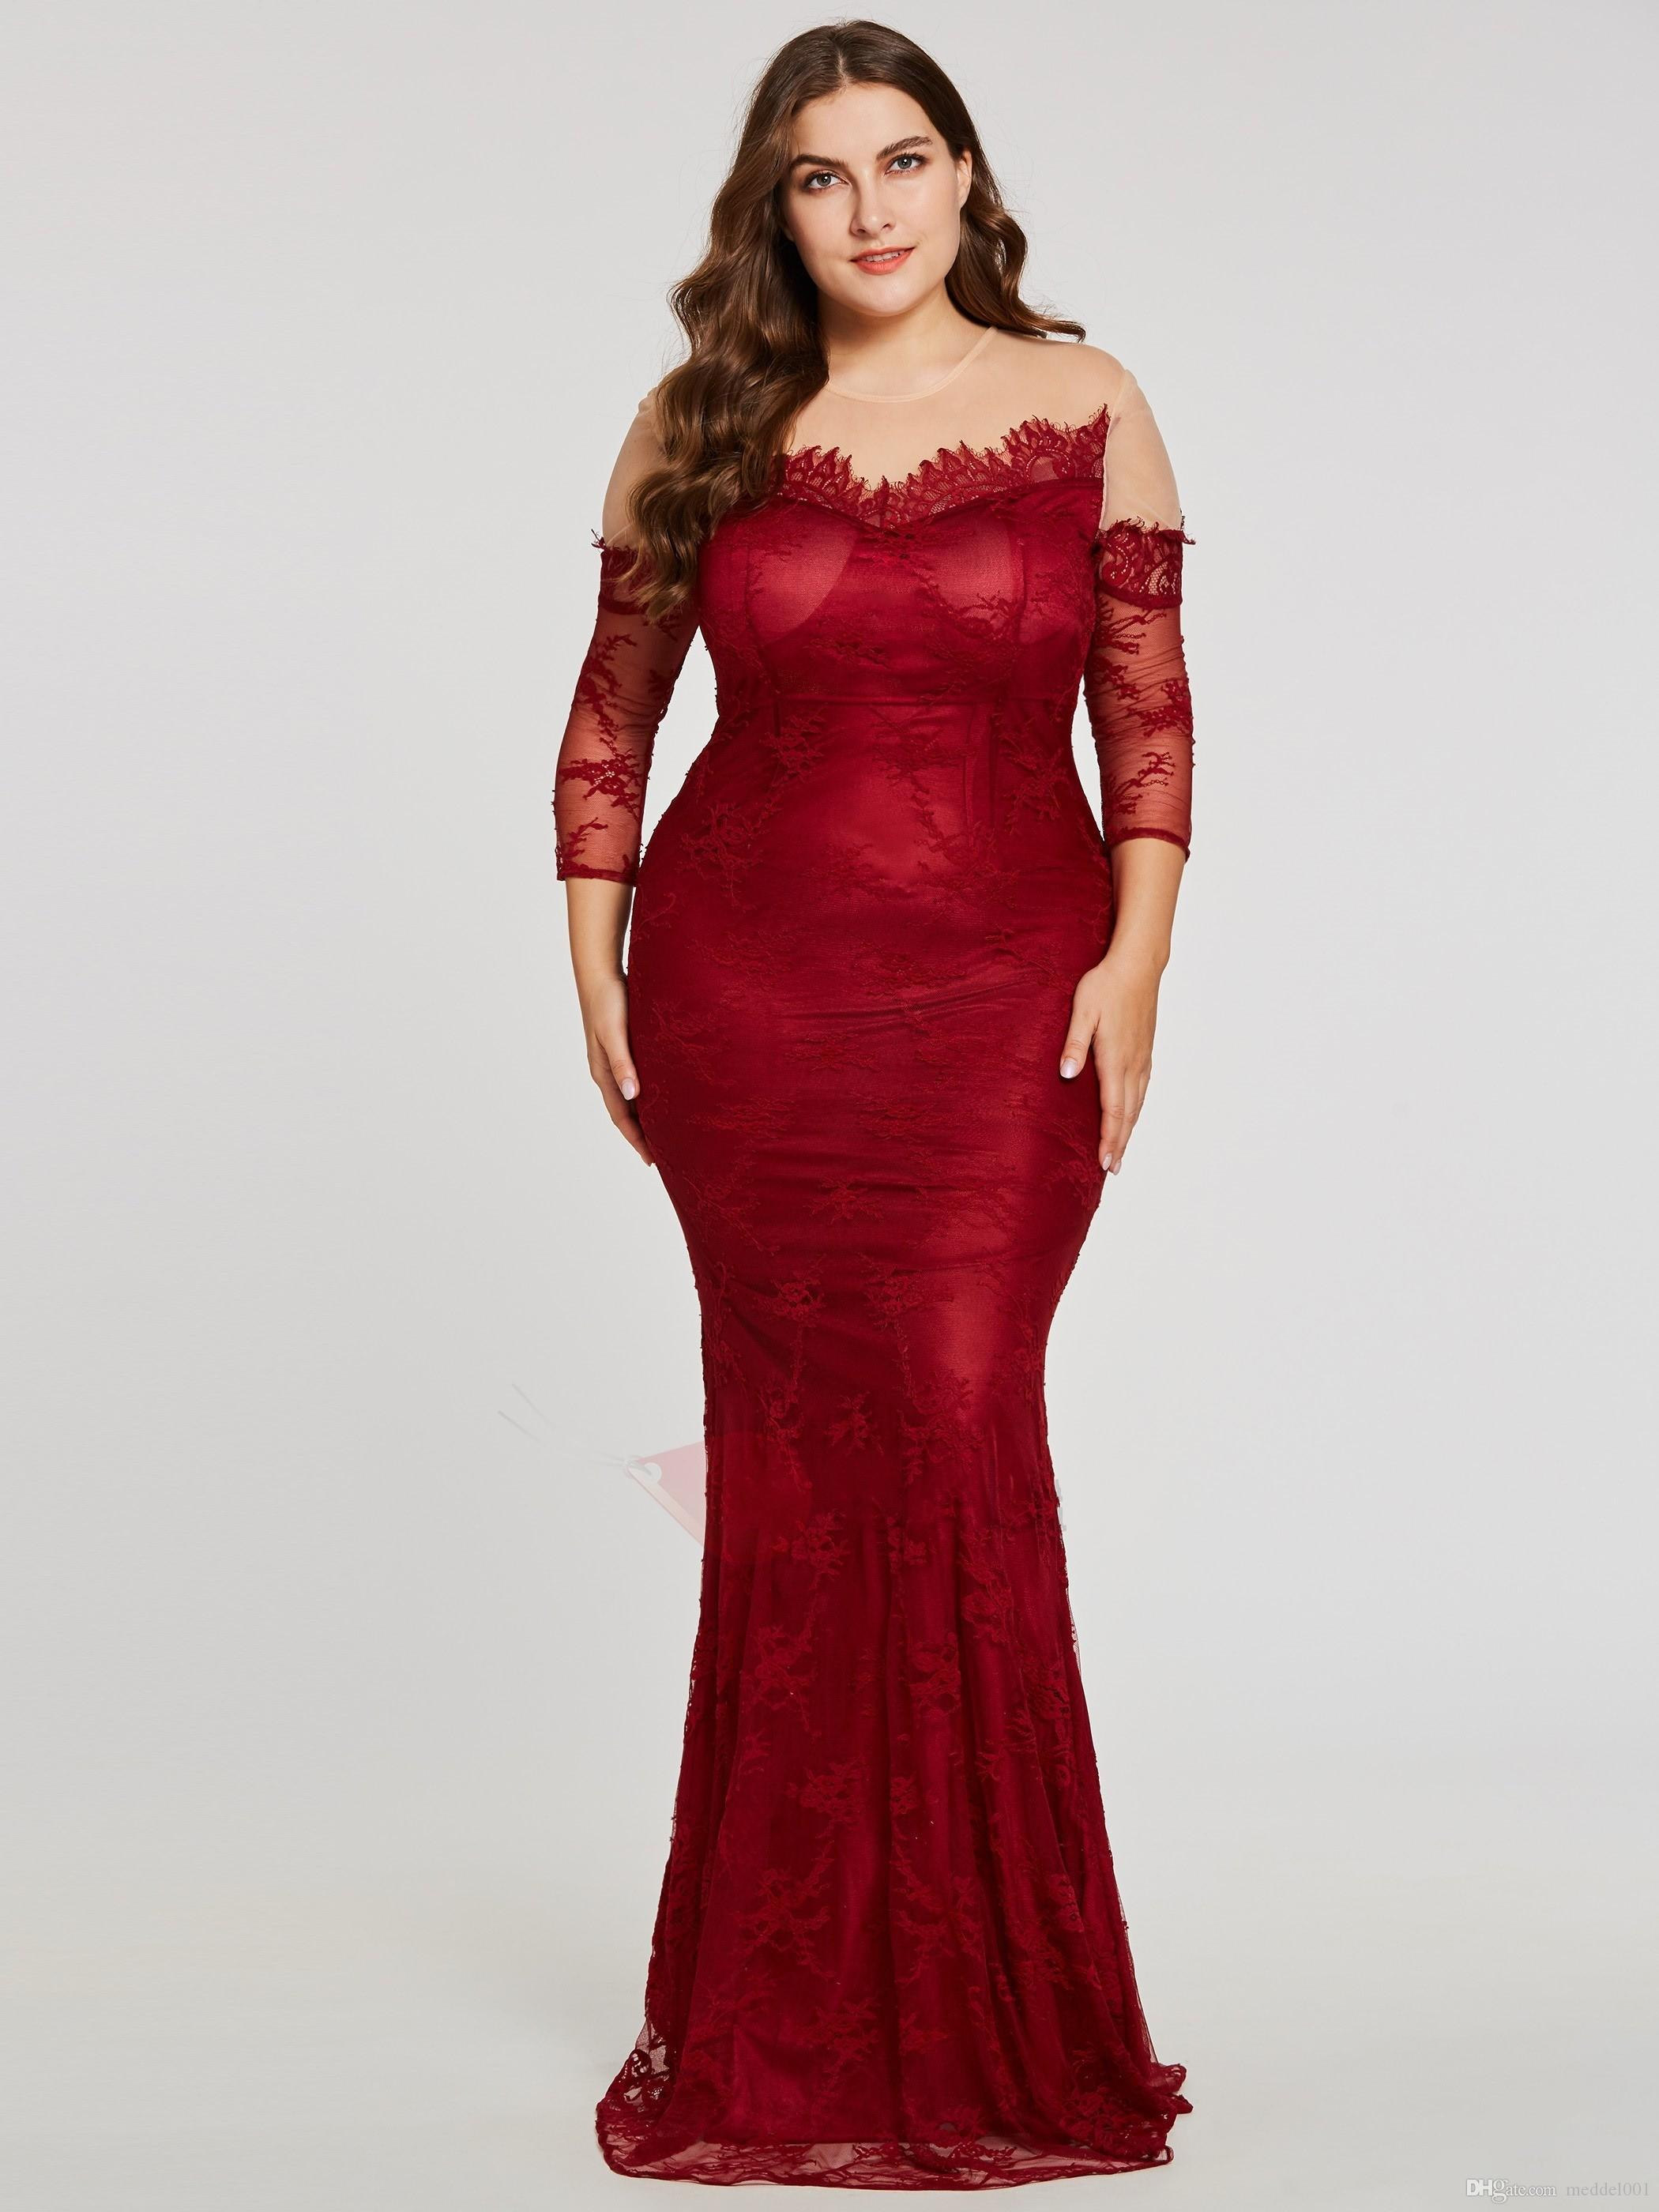 Wine Red Plus Size Special Occasion Dresses For Women Illusion Lace Sleeves  Sheer Neck 2019 Hollow Back Sheath Evening Prom Dress Plus Size Pants ...